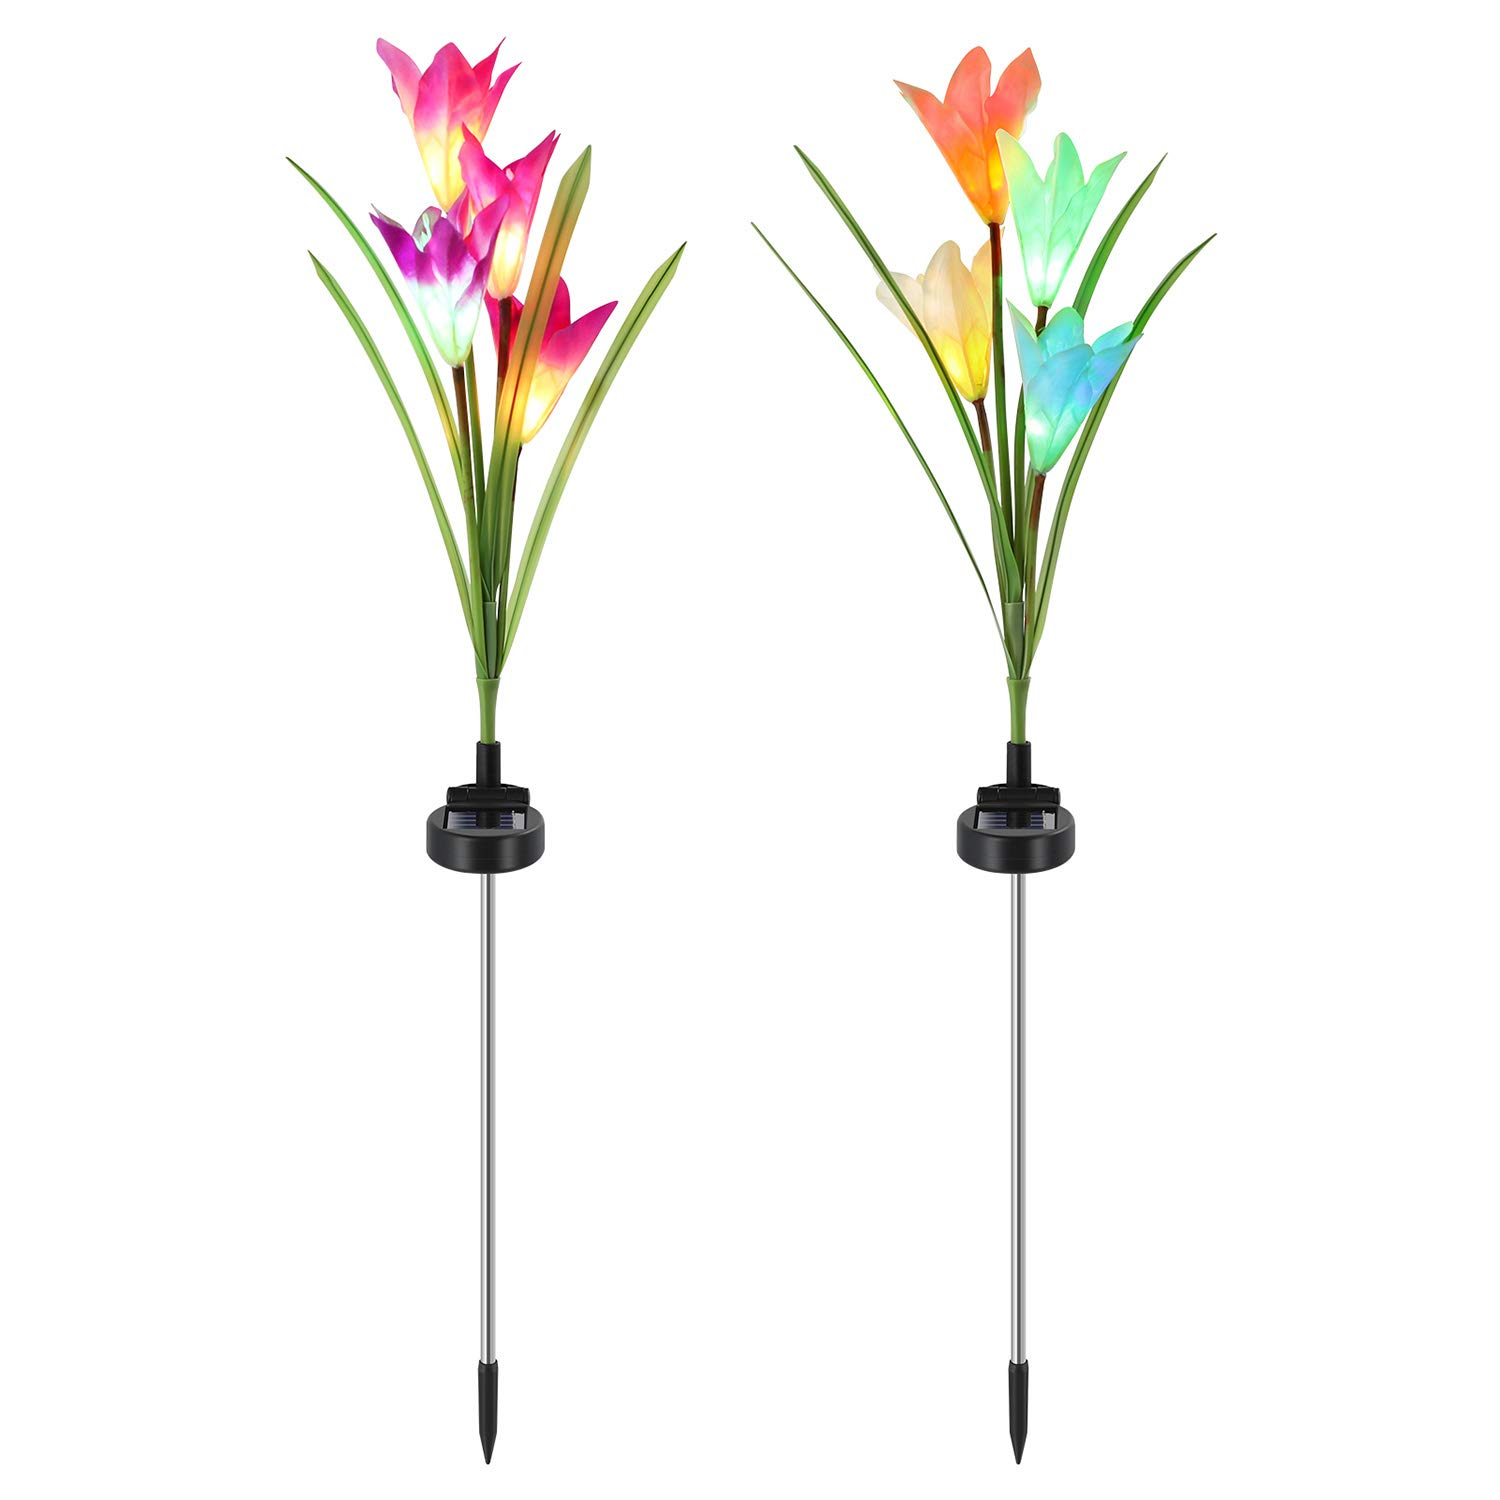 Benuo Solar Garden Lily Stake Light Outdoor Solar Powered Lily Light Multi-Color Changing Auto ON/Off 7 Color Auto Changing Decorative Flower Garden Light Elegant Lily for Garden Lawn Patio Backyard by Benuo